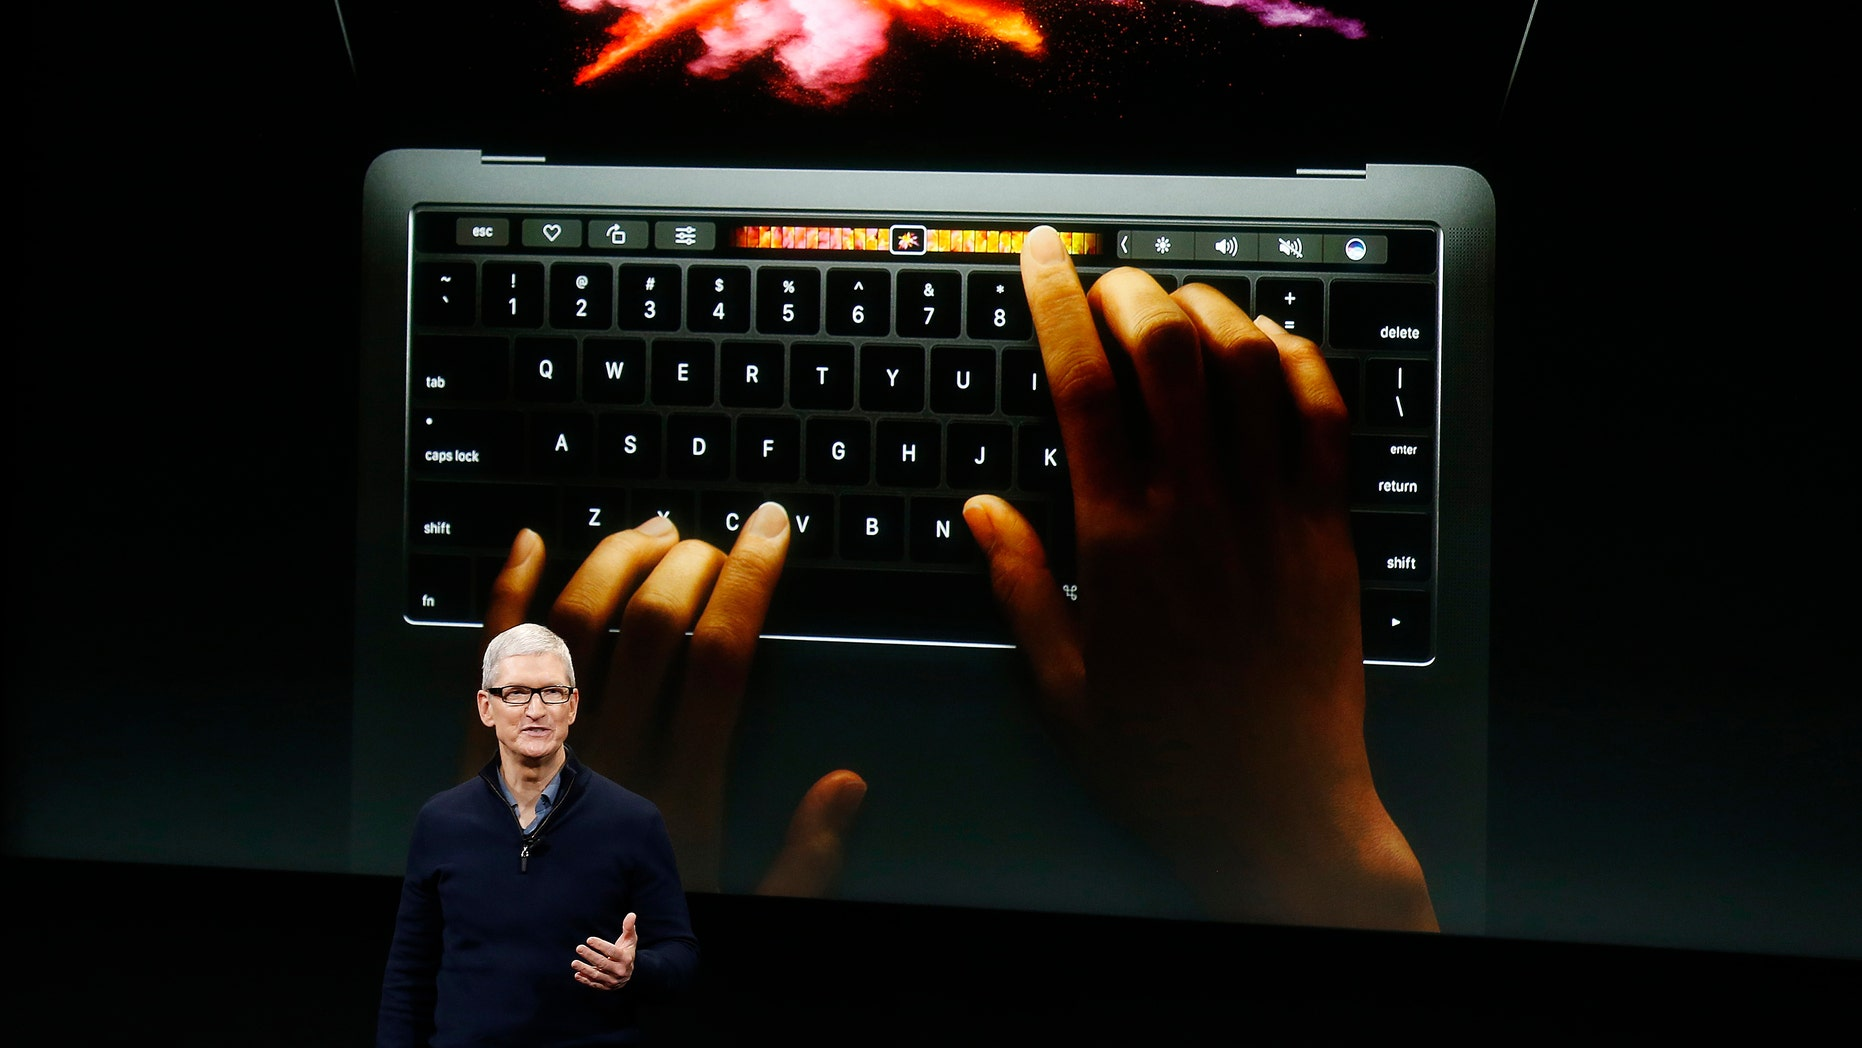 Apple CEO Tim Cook speaks under a graphic of the new MacBook Pro during an Apple media event in Cupertino, California, U.S. Oct. 27, 2016. (REUTERS/Beck Diefenbach)